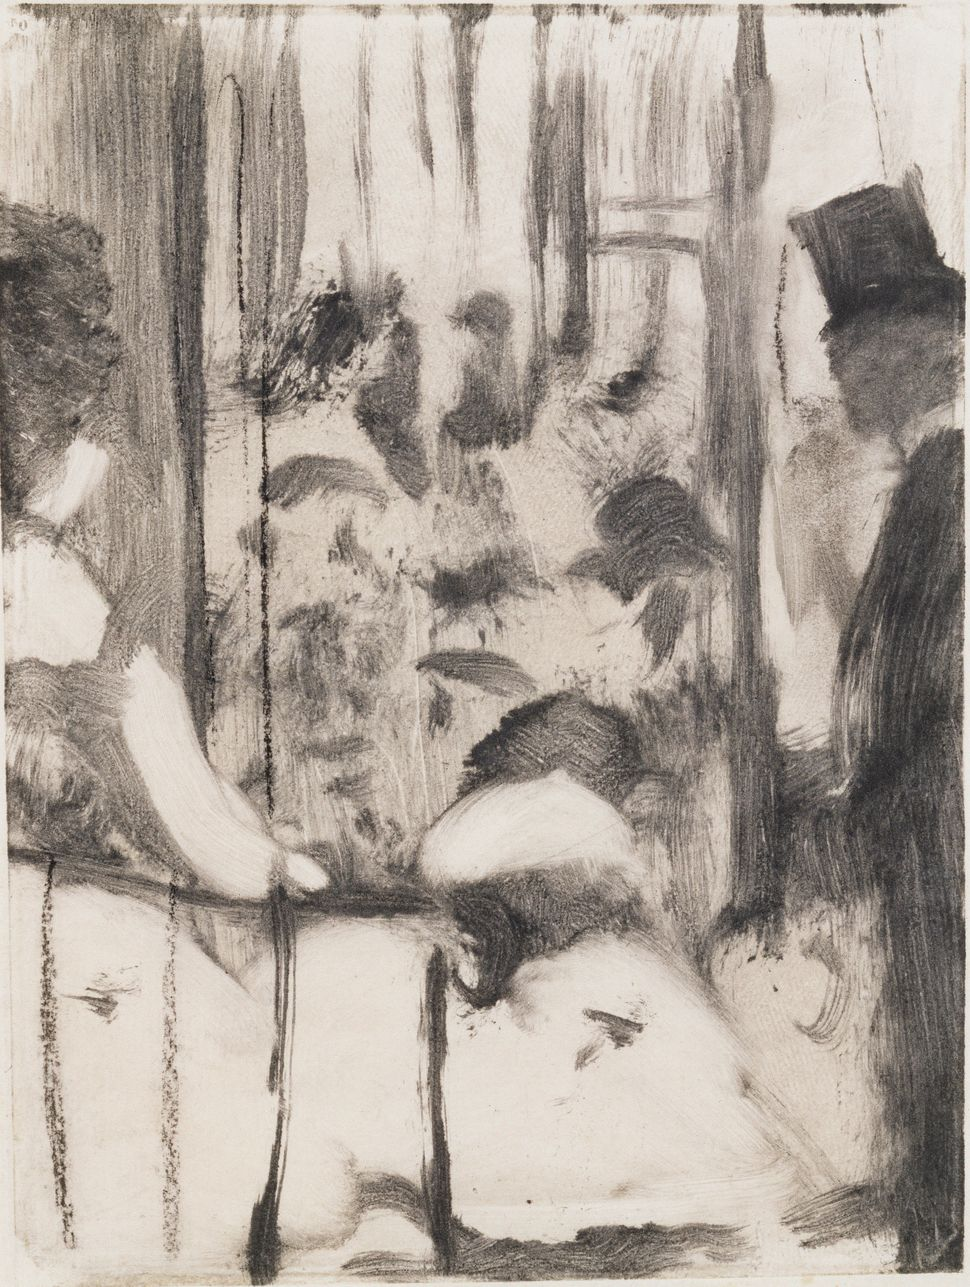 Edgar Degas (French, 1834&ndash;1917). <i>Dancers Coming from the Dressing Rooms onto the Stage</i><i> (Et ces demoiselles fr